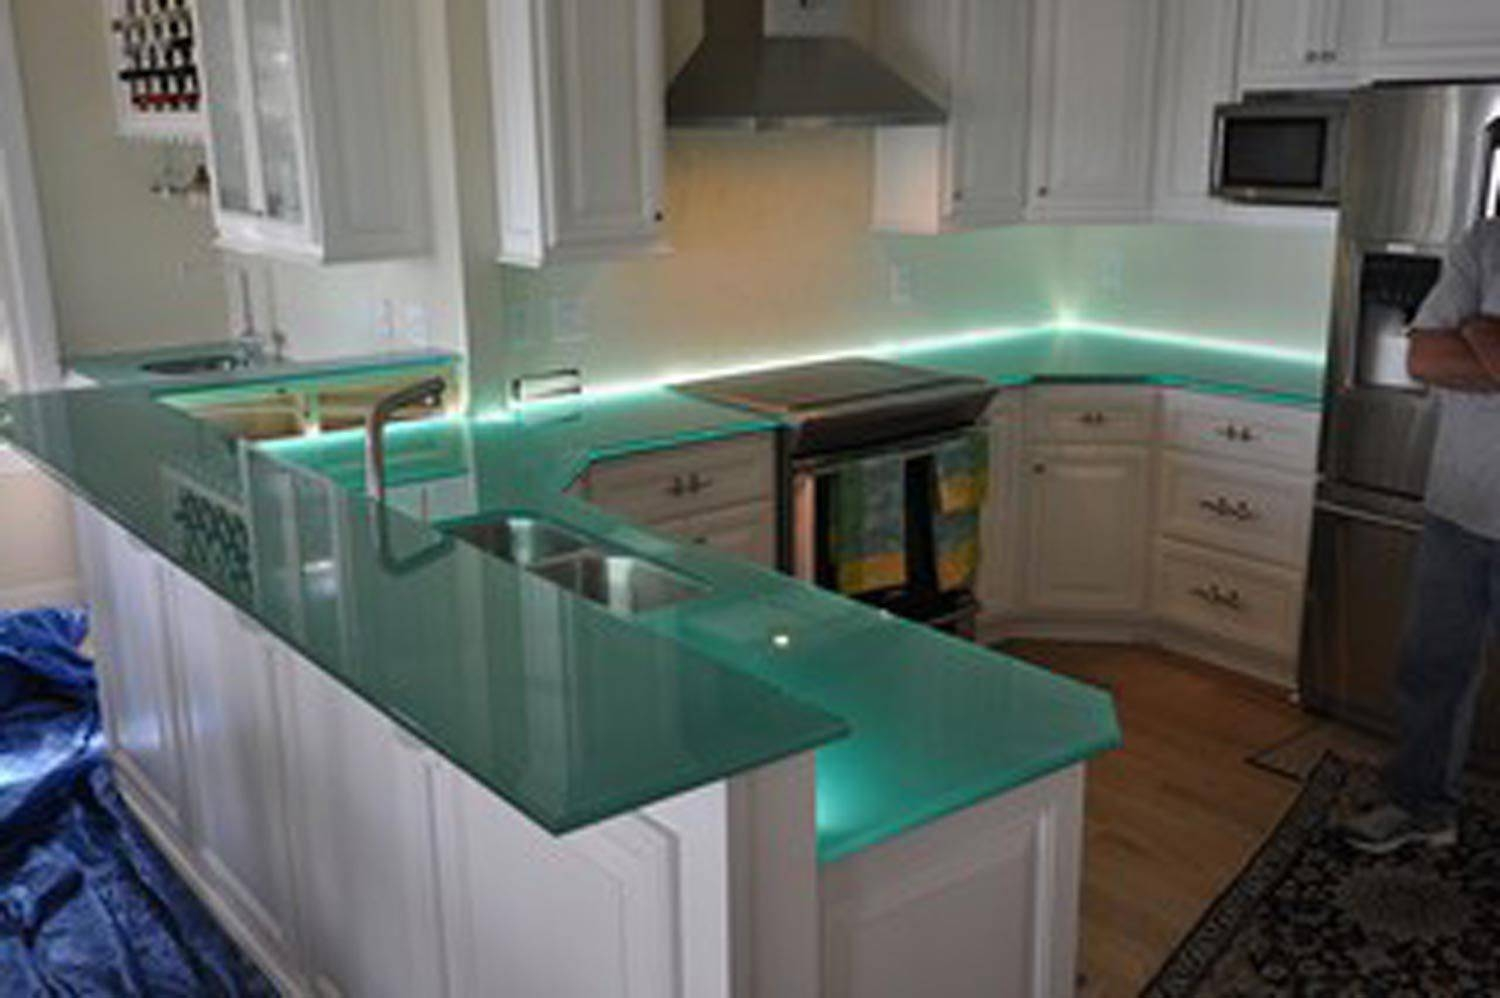 Kitchen Islands: Kitchen Island Bar Top Seal Counter Tile Grout with Apothecary Pendant Lights (Image 13 of 15)